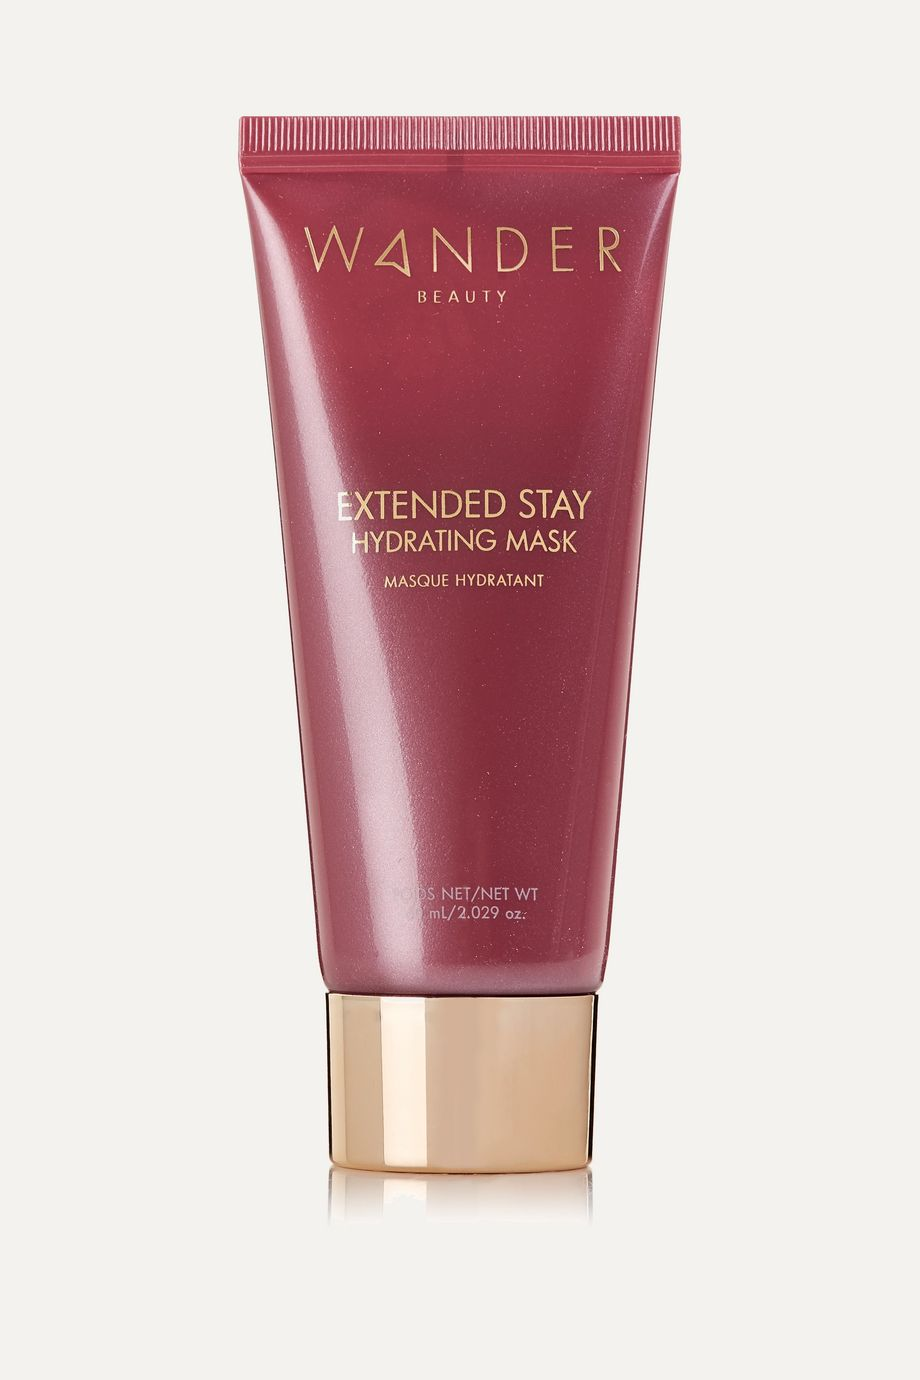 Wander Beauty Extended Stay Hydrating Mask, 60ml